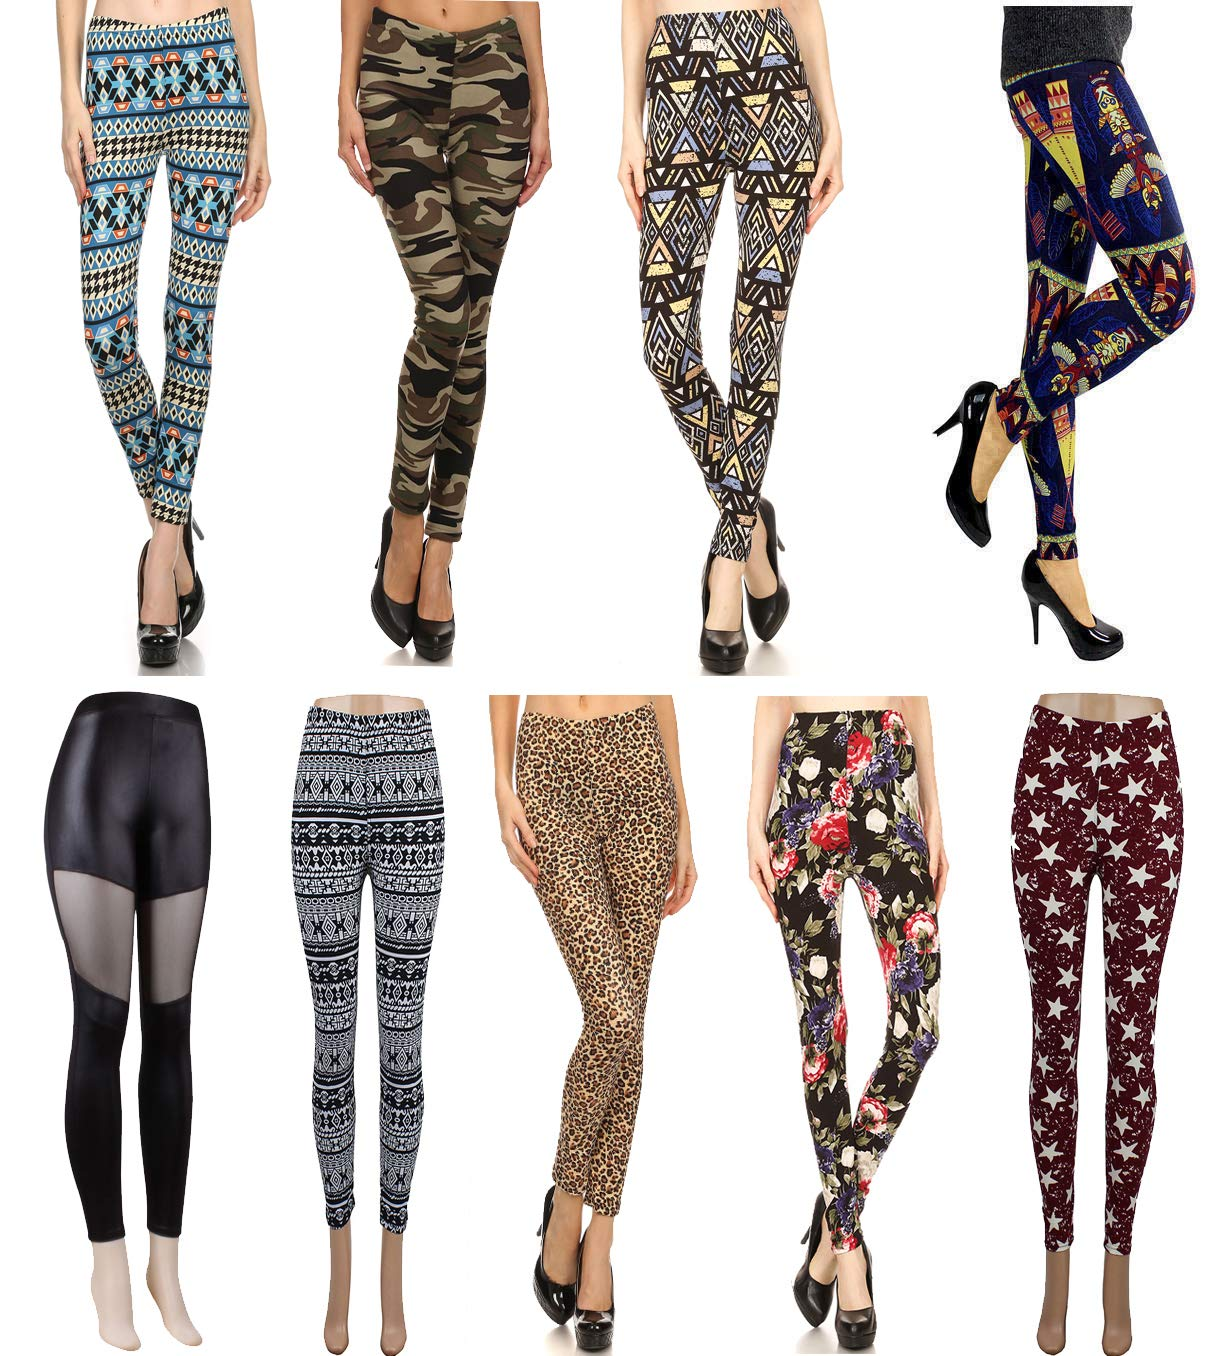 Wholesale Lots Leggings for Women - 9-Pack Aztec Tribal Print Leggings with Patterned Design